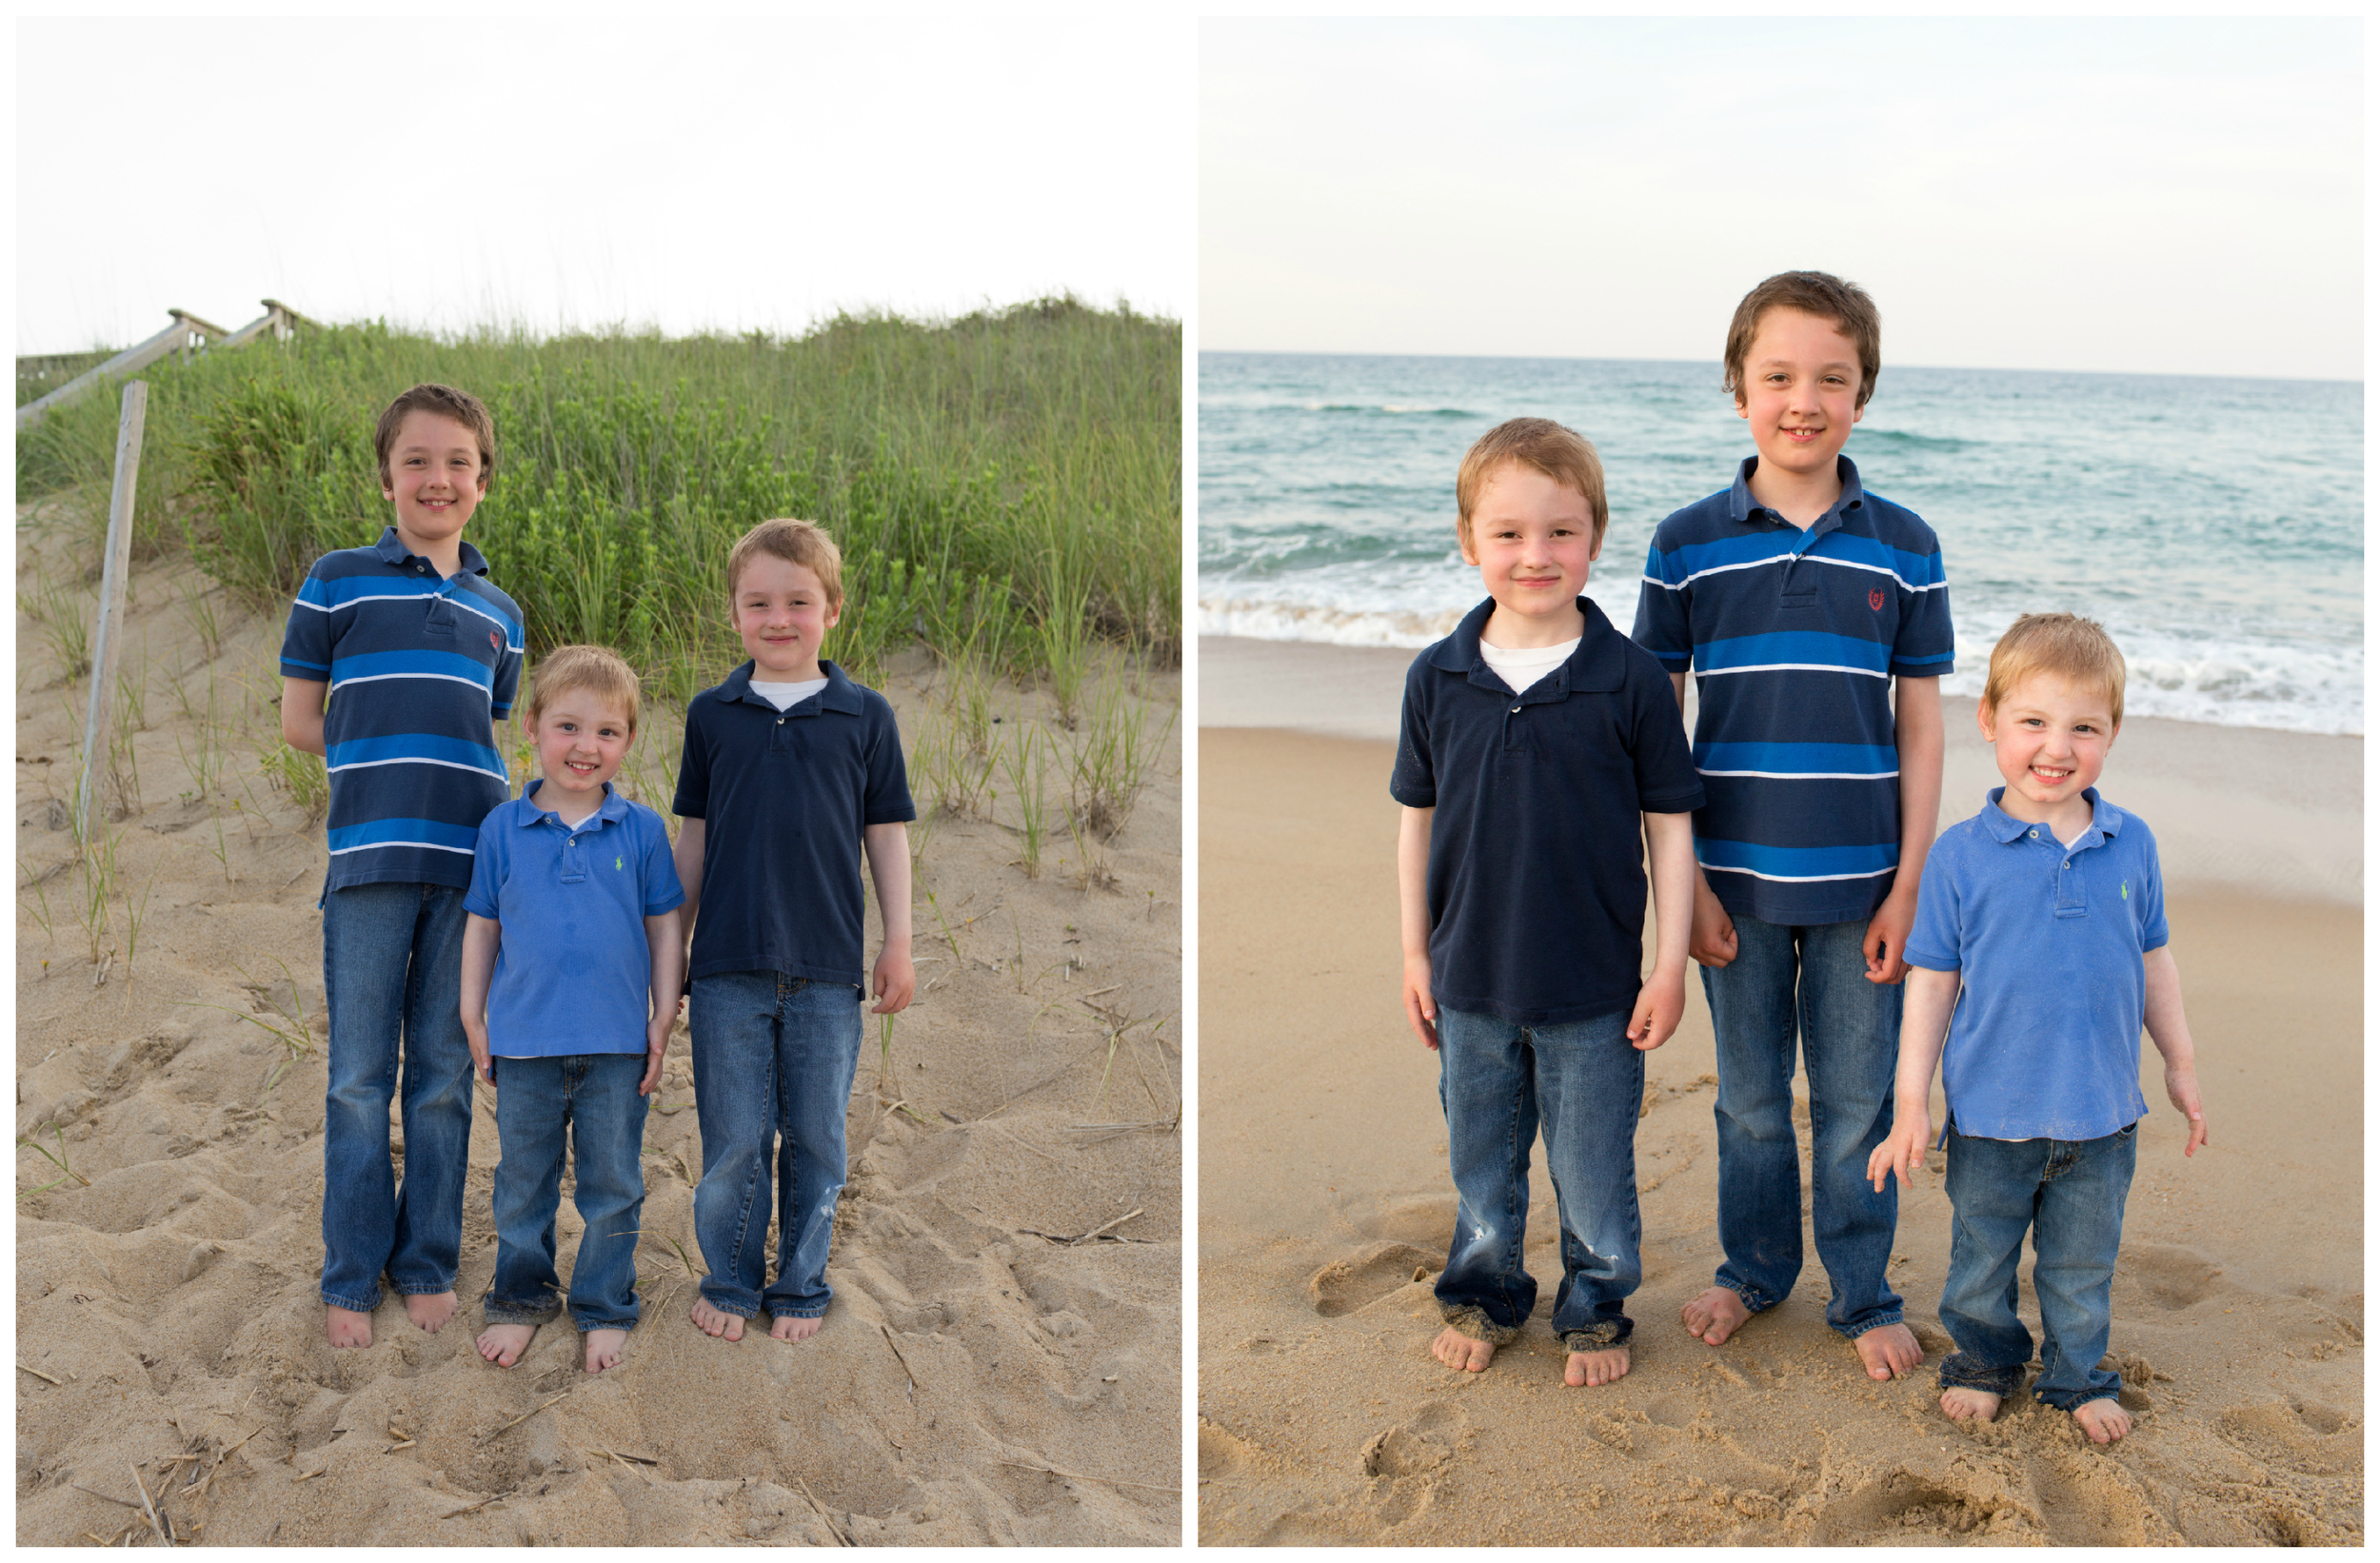 three little boys (brothers) at Outer Banks beach